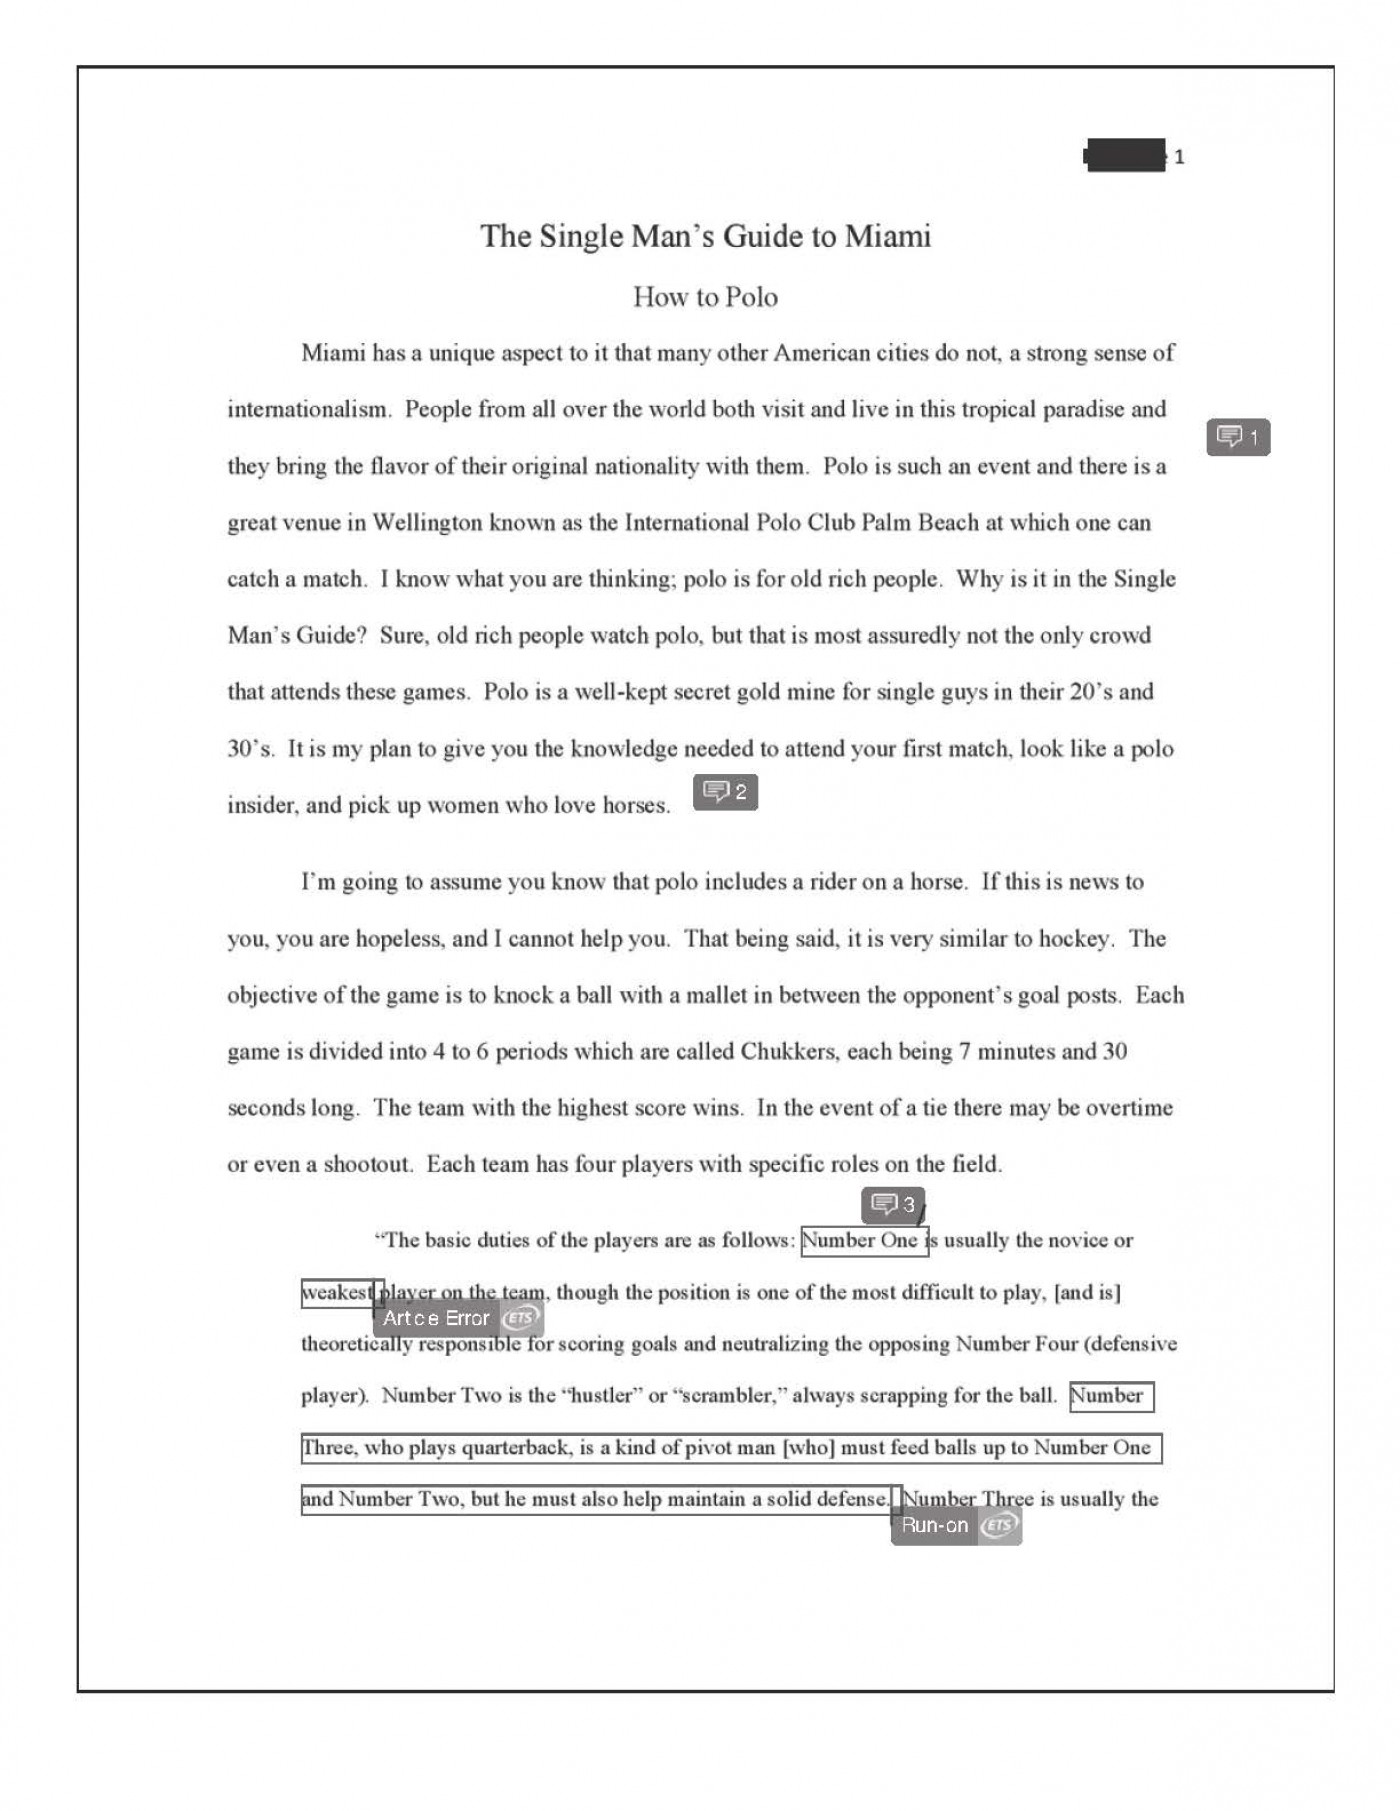 005 Informative Essay Topics Essays Sample Funny Argumentative For Middle School Final How To Polo Redacted P College Students Hilarious Good Remarkable High 4th Grade Expository 1400